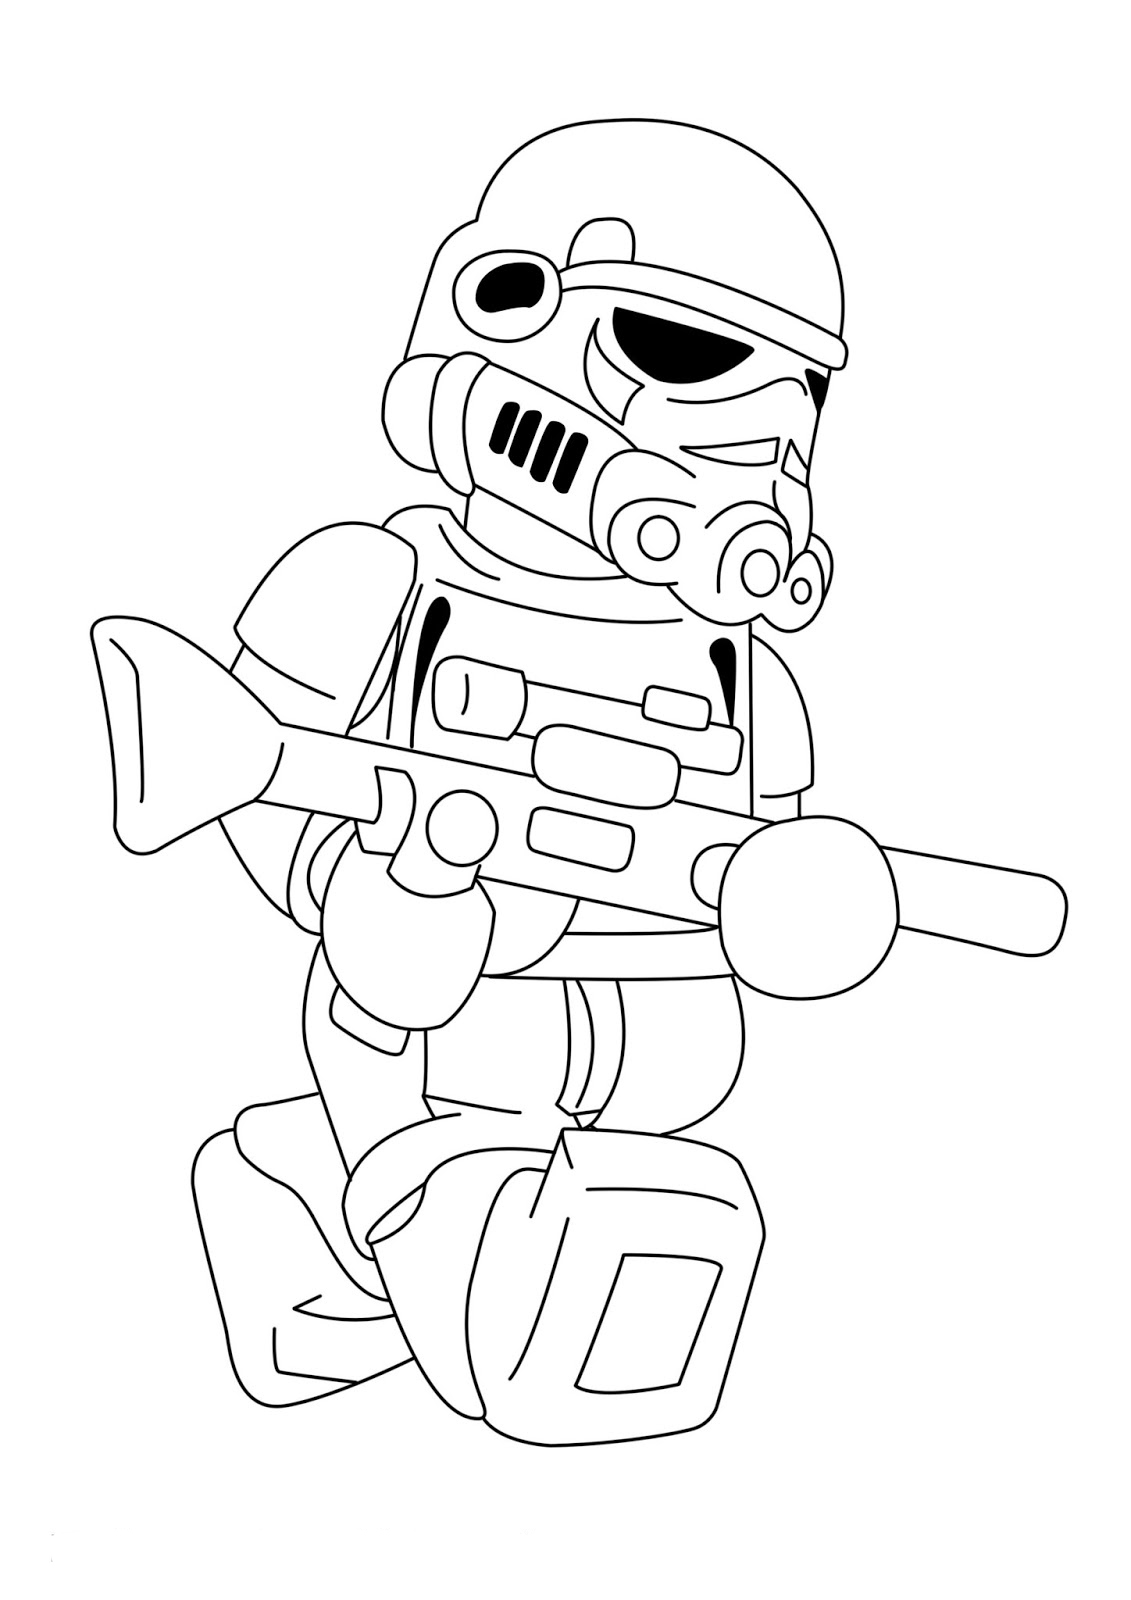 coloring picture lego create your own lego coloring pages for kids coloring picture lego